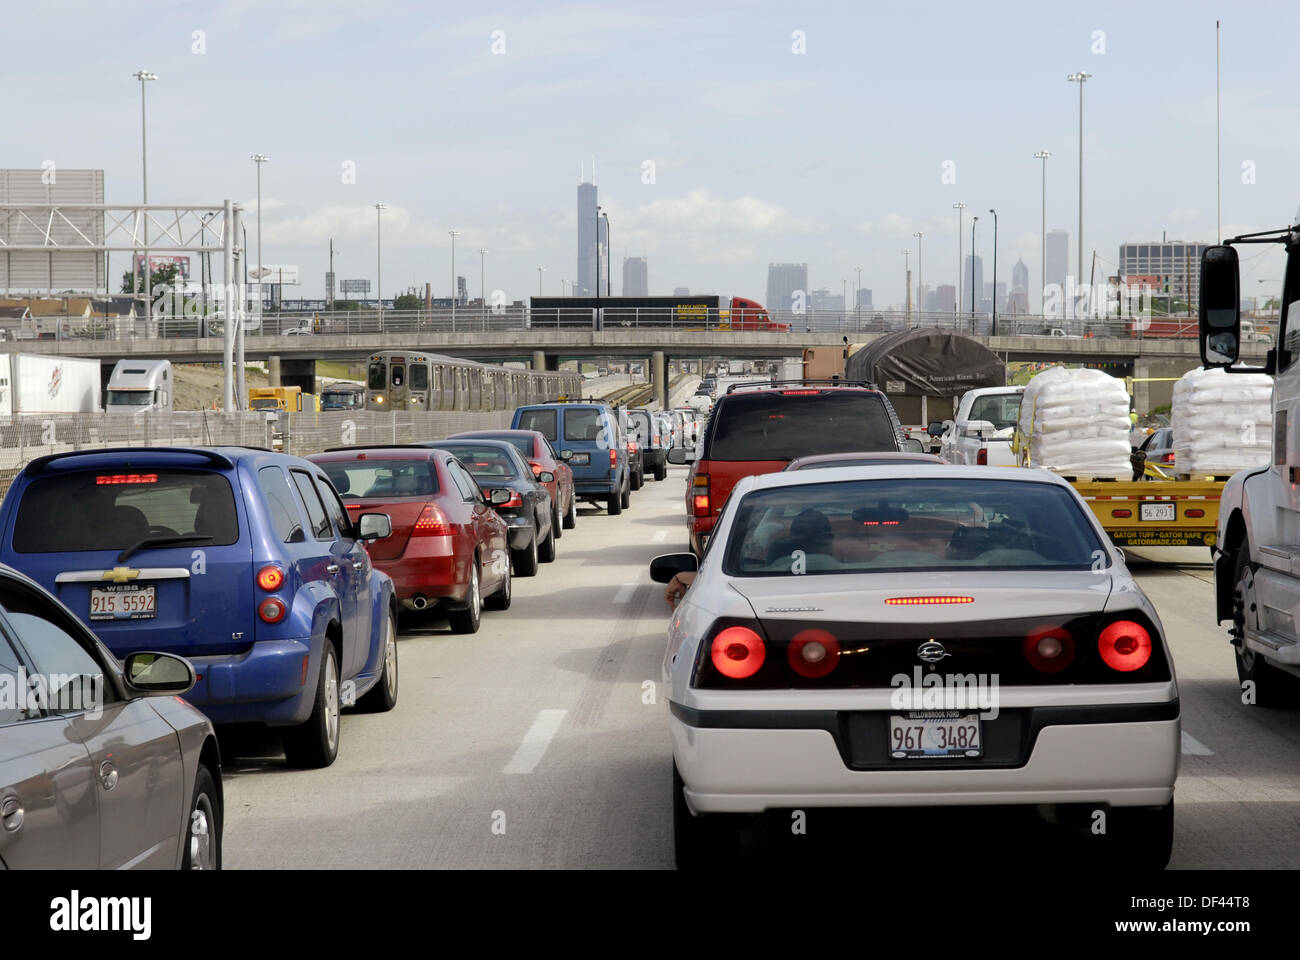 I 94 Interstate Stock Photos & I 94 Interstate Stock Images